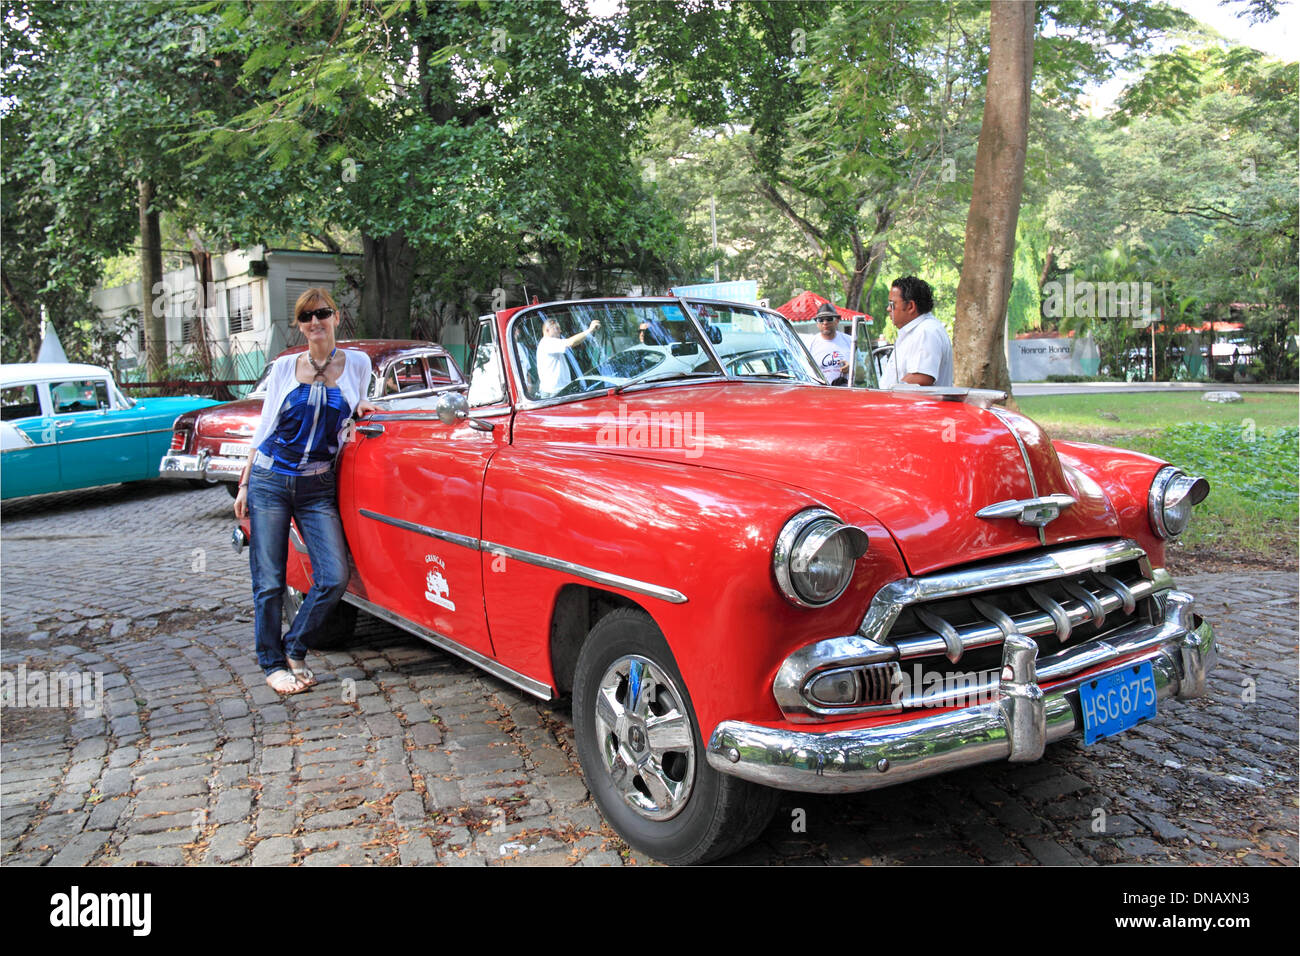 All Chevy 1952 chevy styleline parts : 1952 Chevrolet Styleline Deluxe Convertible by Parque Almendares ...